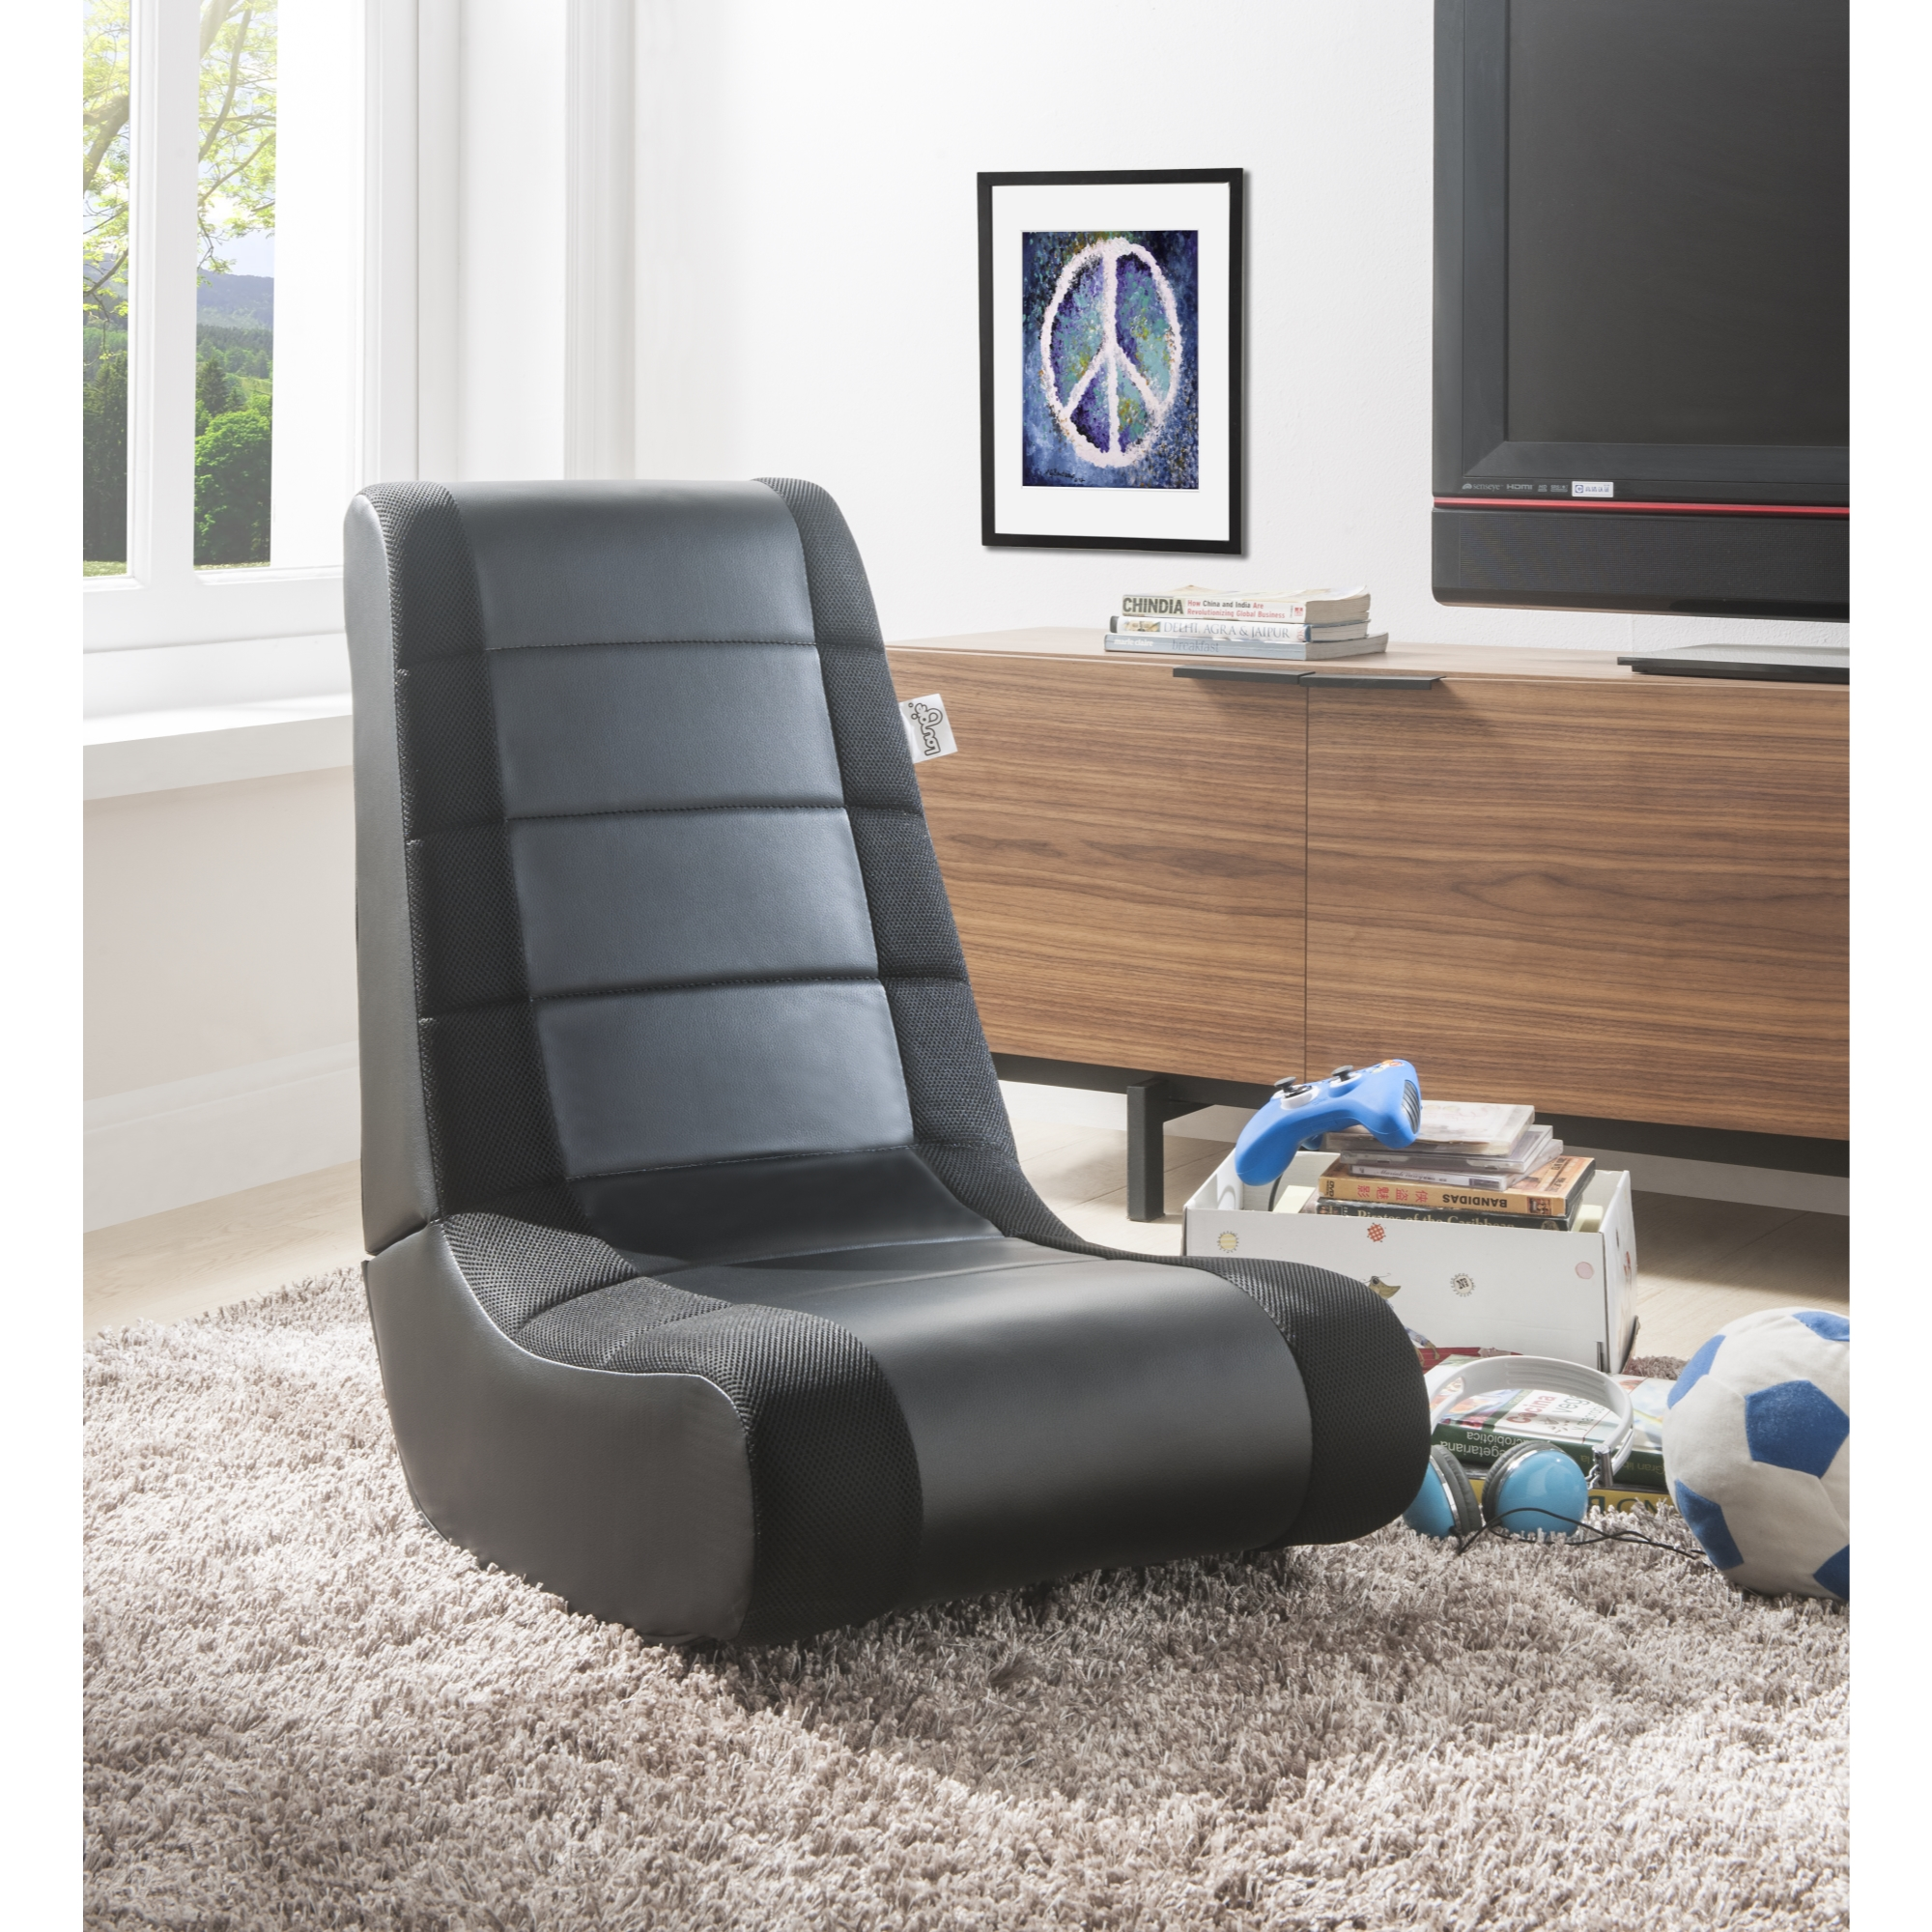 Loungie Black/Black PU Leather Chair For Kids, Teens, Adults, Boys Or Girls